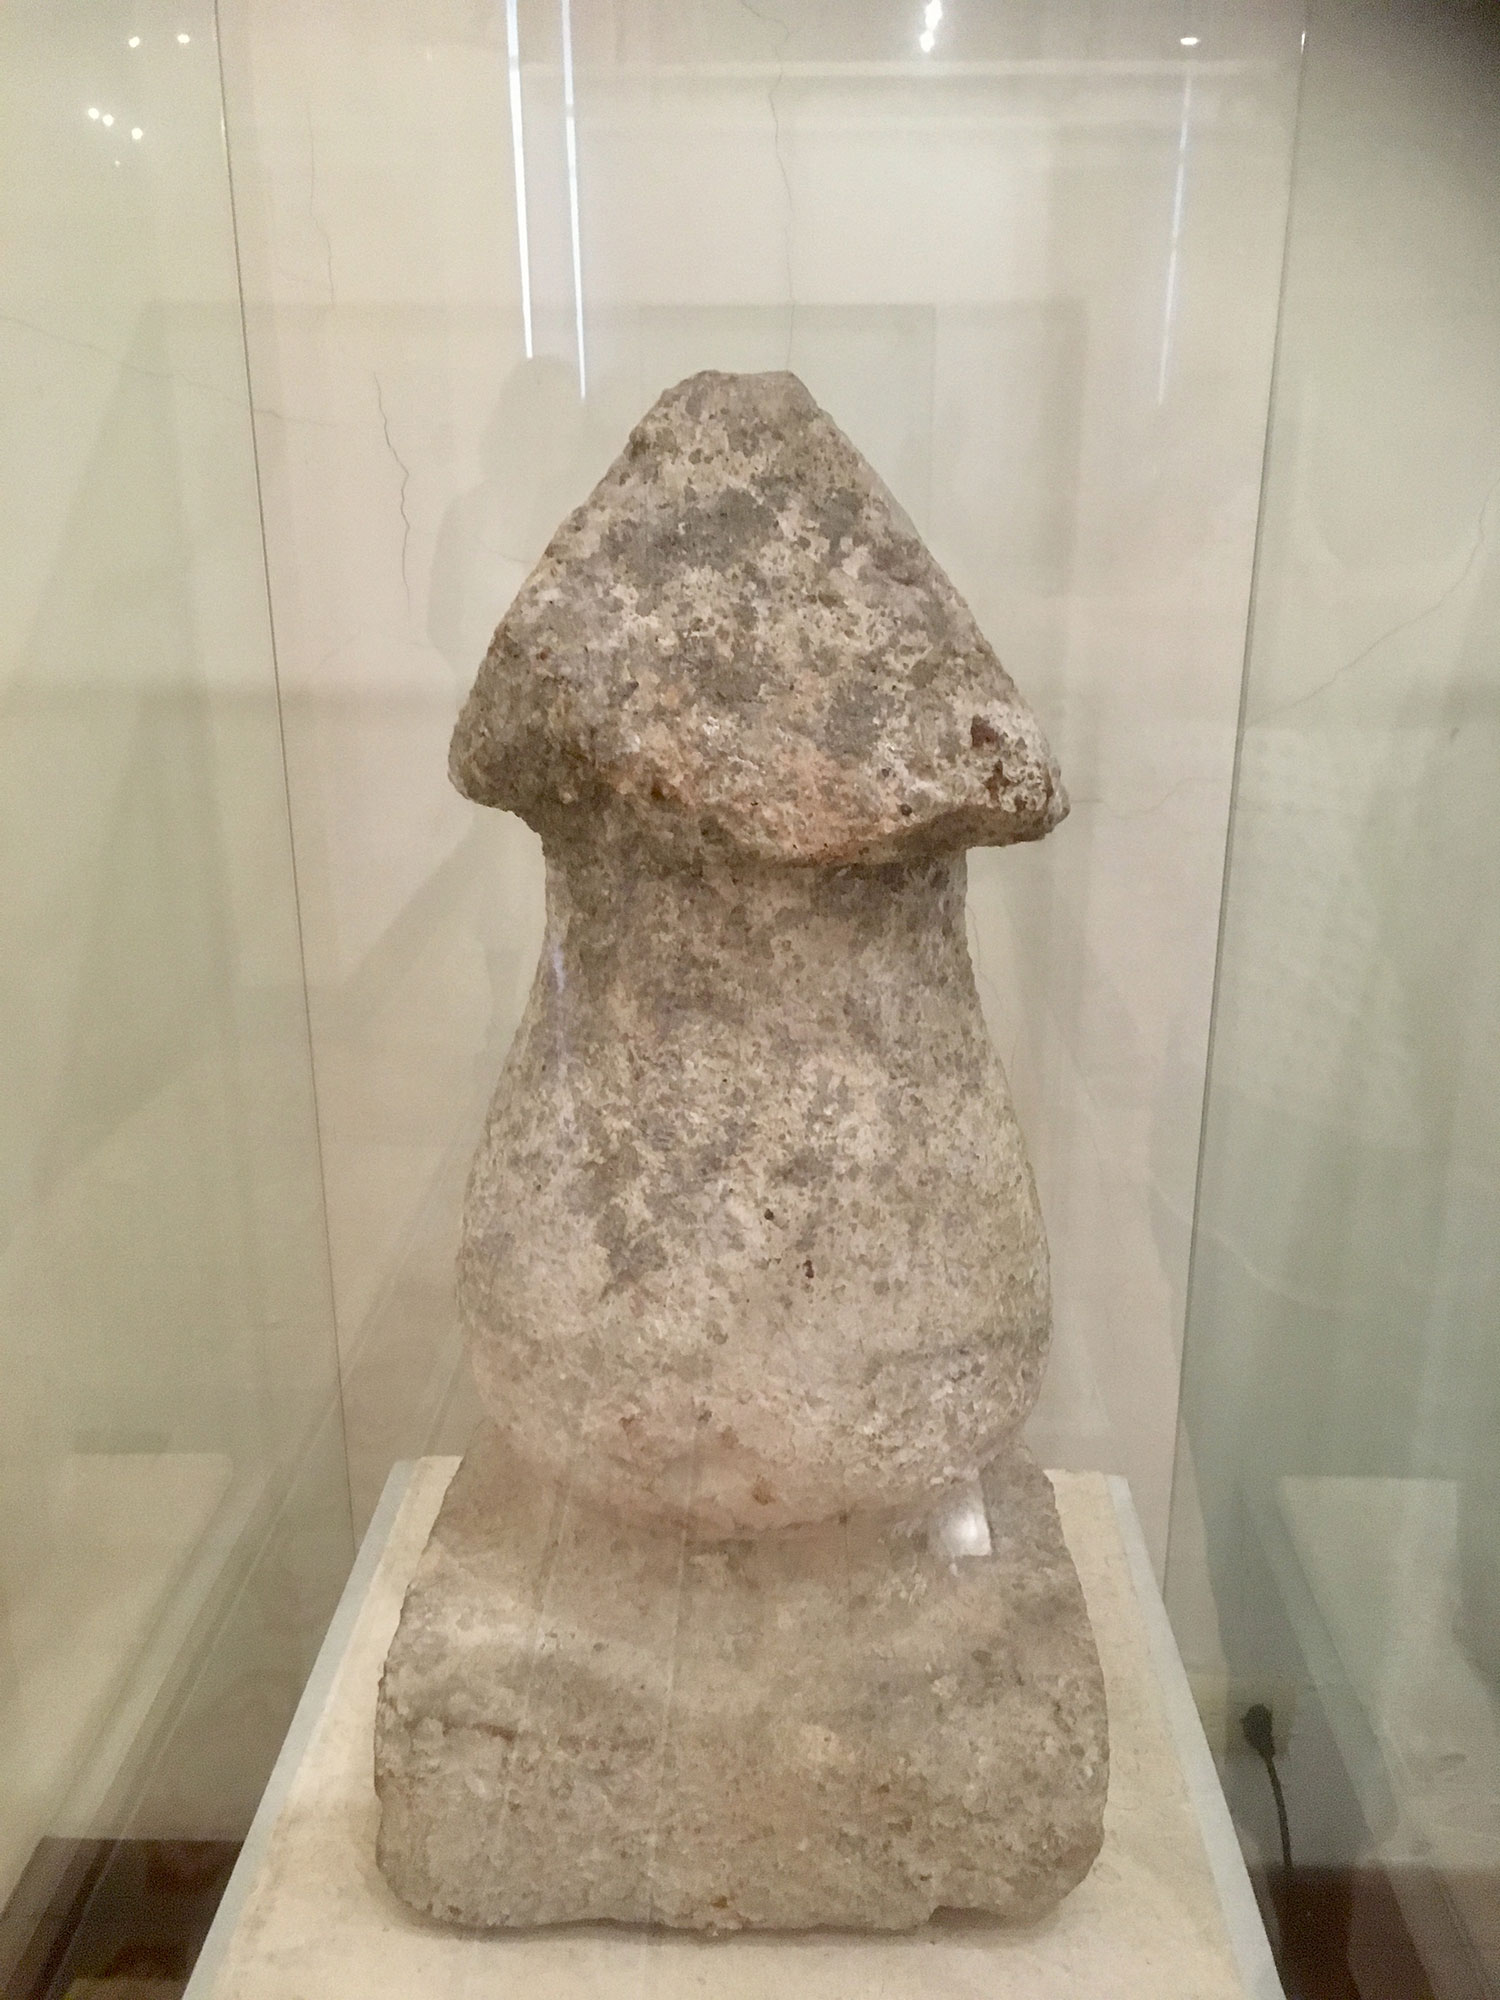 Phallus worship was common in Chichén Itzá, Uxmal and all Puuc sites, as well as in T'Hó. This one was found at the corner of today's Cultural centre called Olimpio.